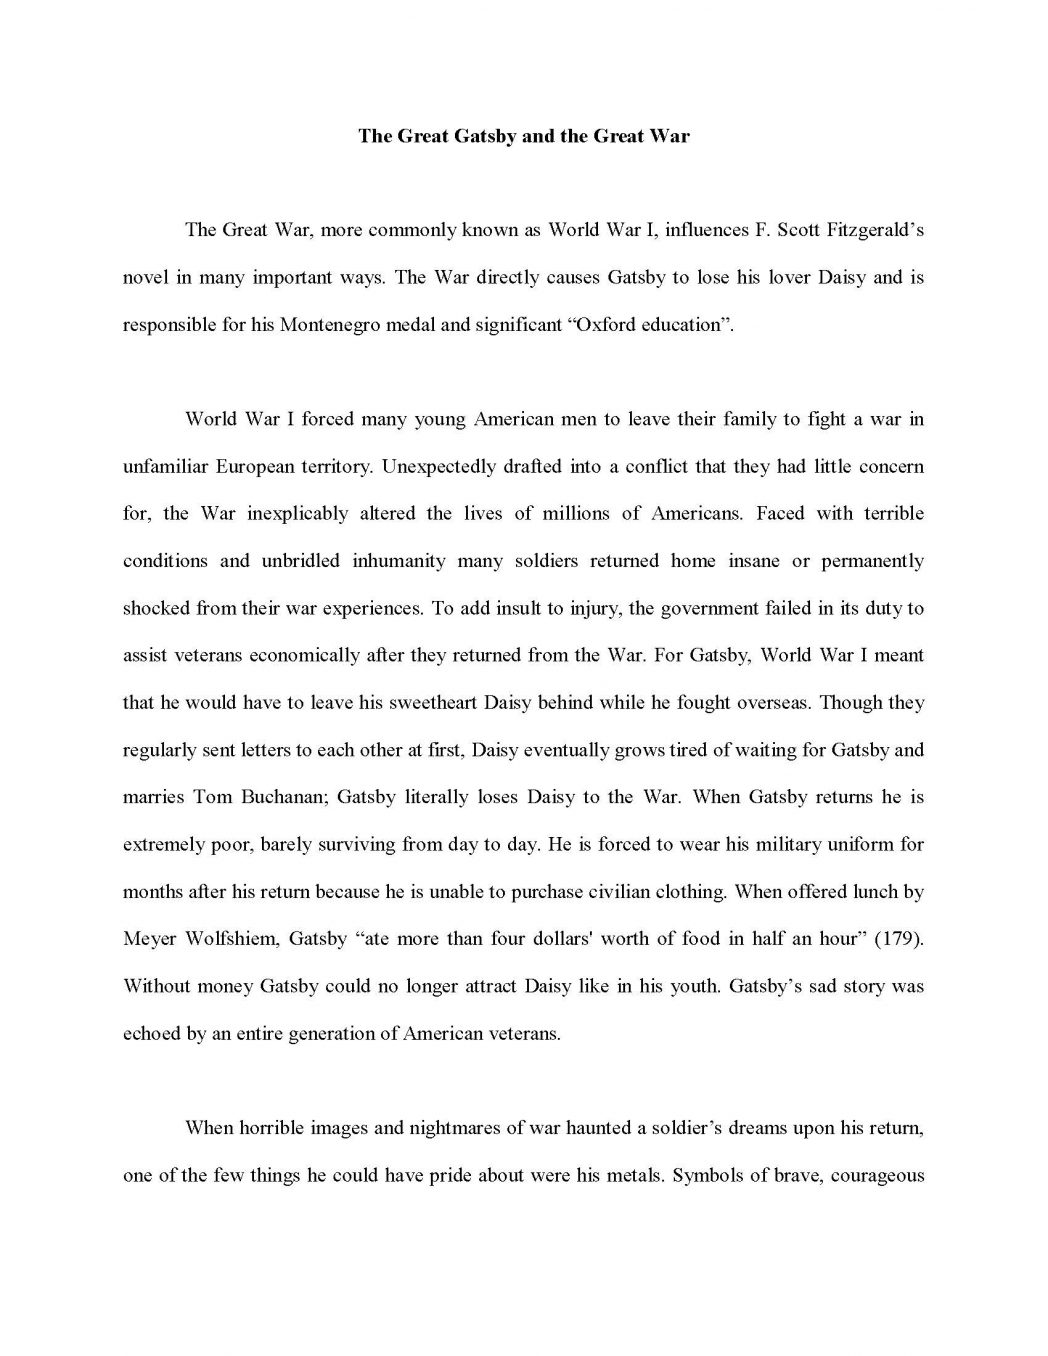 012 Essay Example Social Commentary Writing Career Sample Optometrist How To Write Inform For English On Adhd Structure Data Reflective Good Critical Dreaded Art The Great Gatsby Full